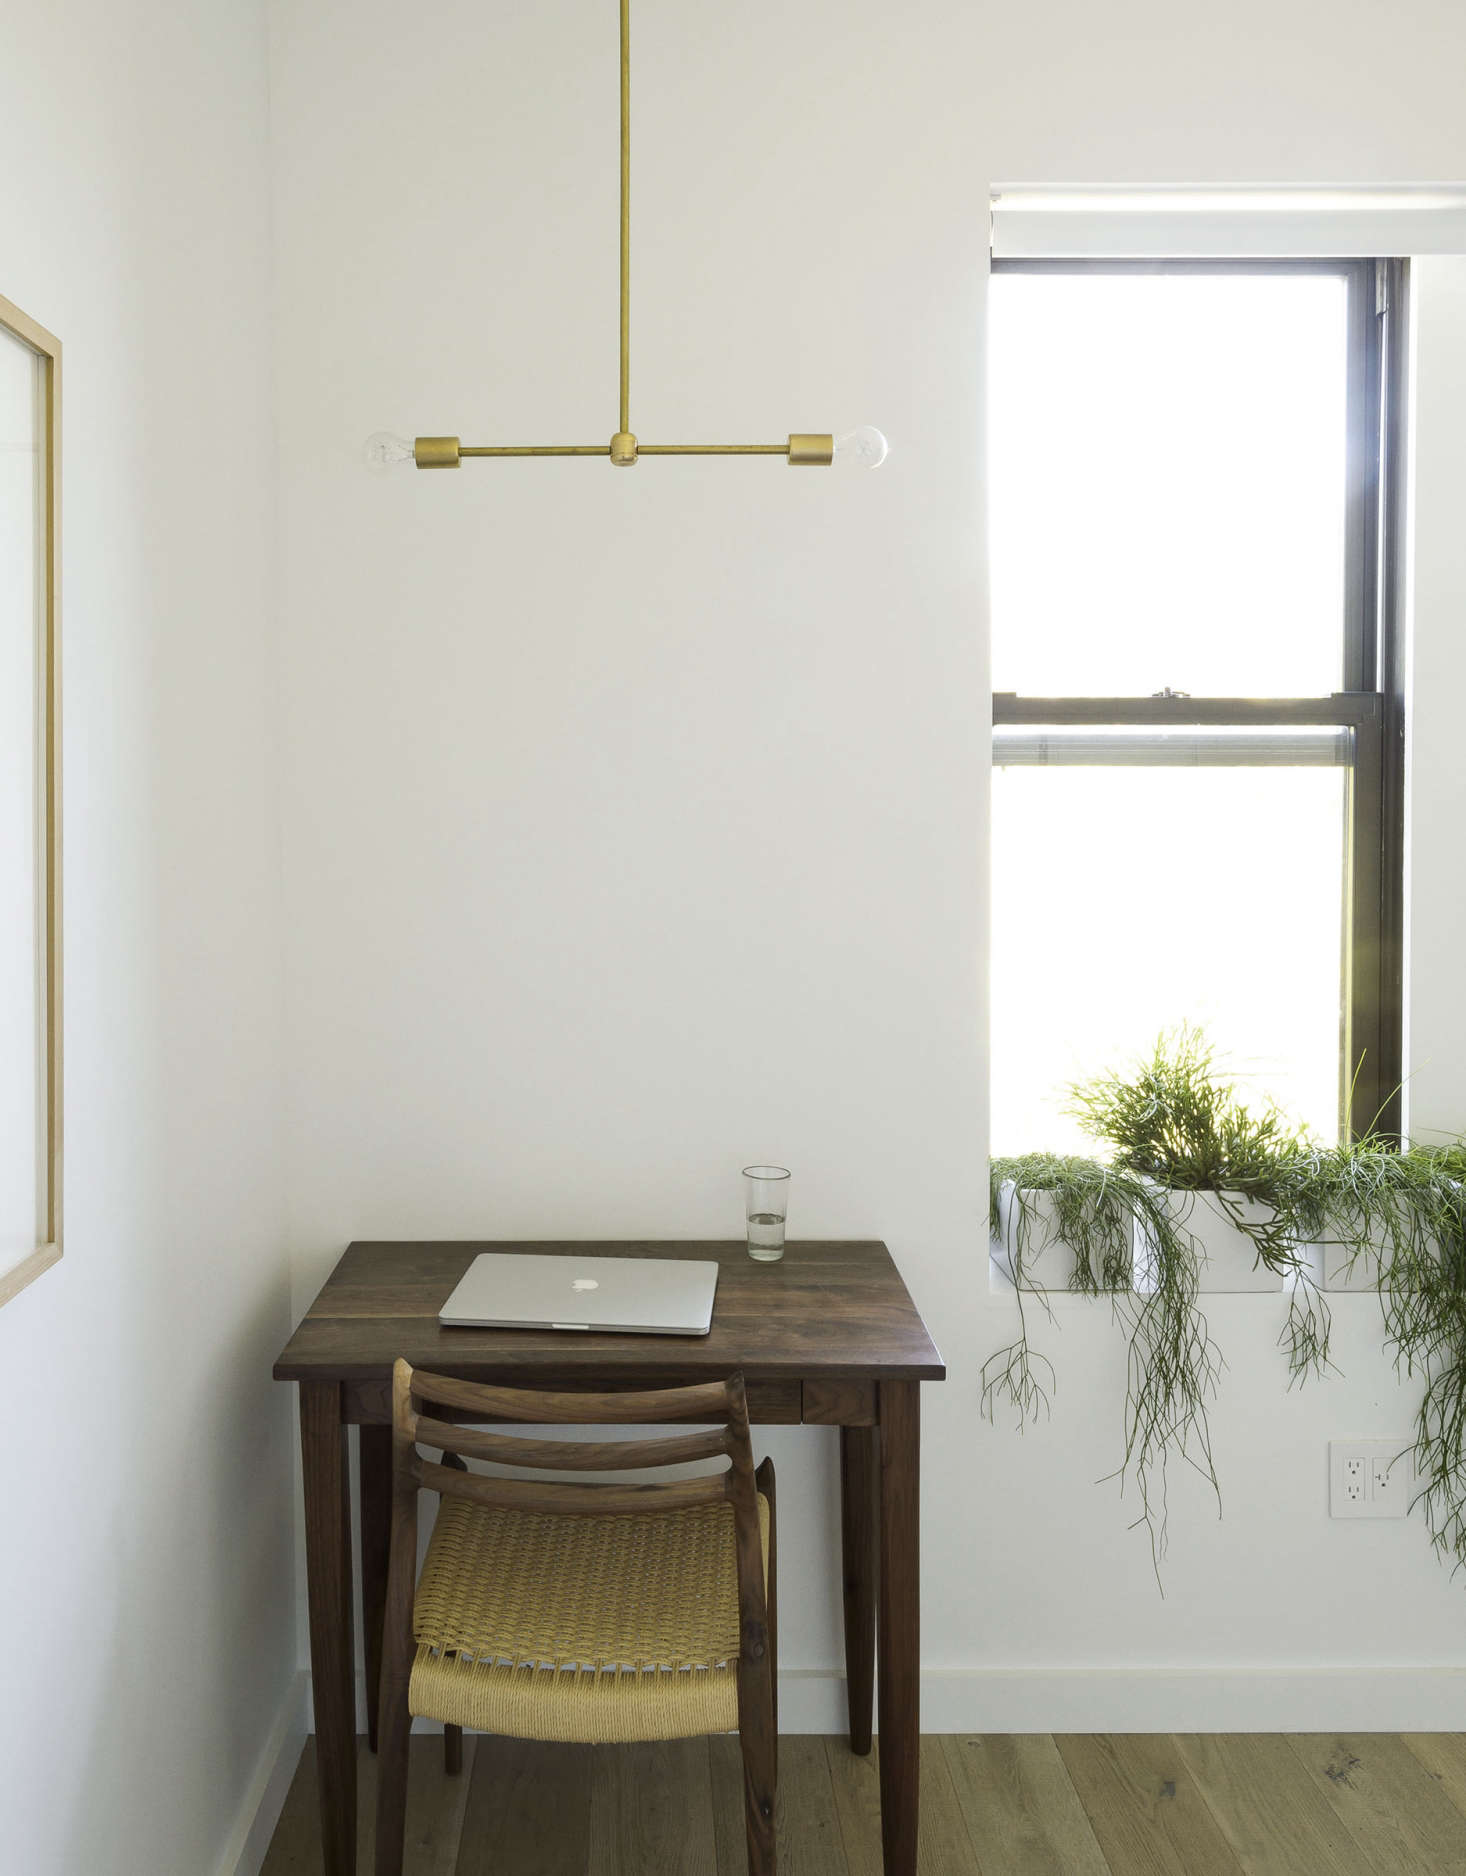 10 tips for keeping tech in check family edition remodelista